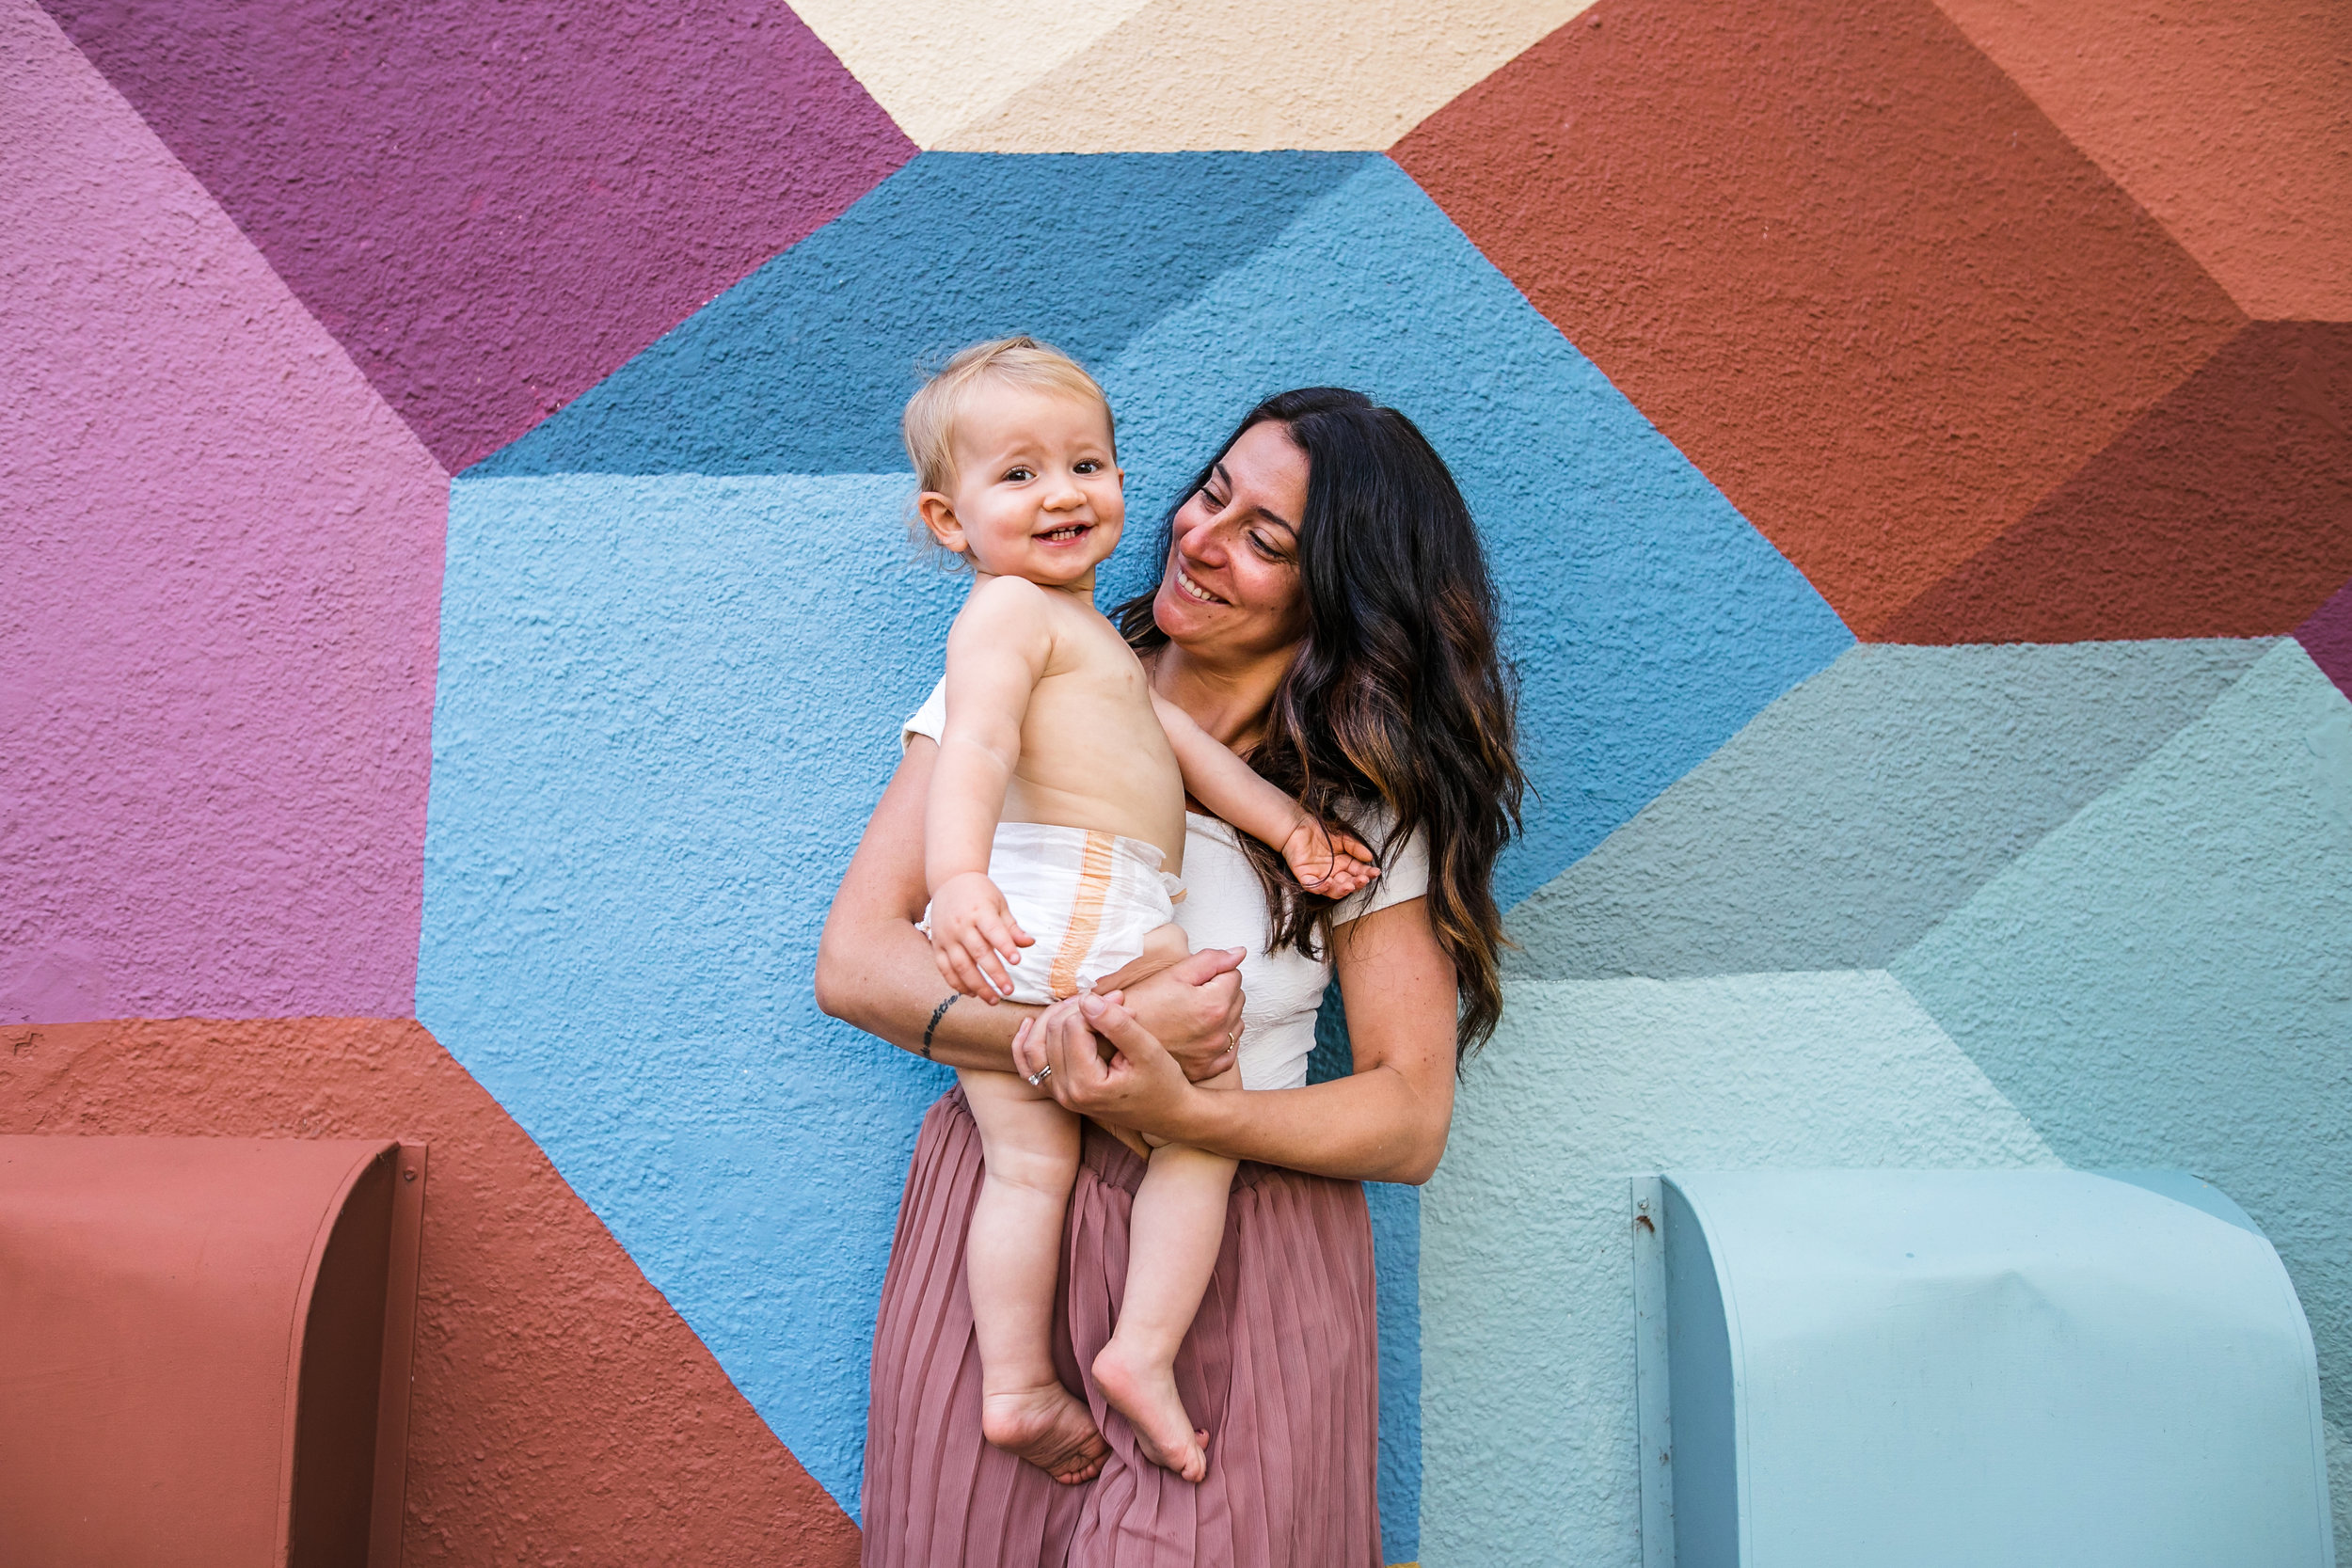 mom holds diapered baby in front of colorful wall-(ZF-0126-04493-1-037).jpg